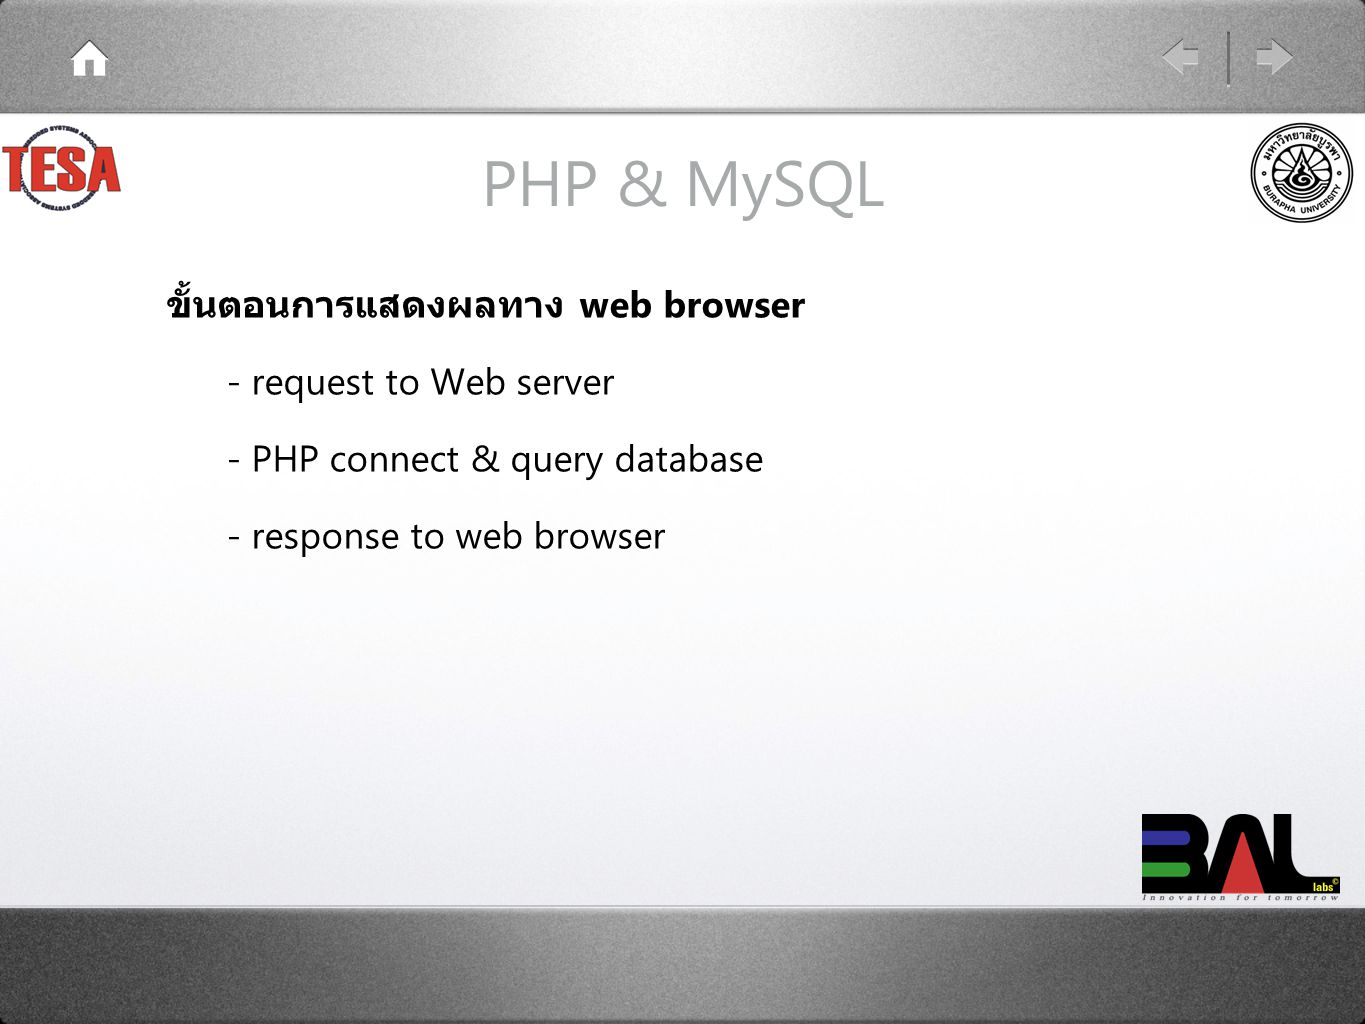 PHP & MySQL ขั้นตอนการแสดงผลทาง web browser - request to Web server - PHP connect & query database - response to web browser